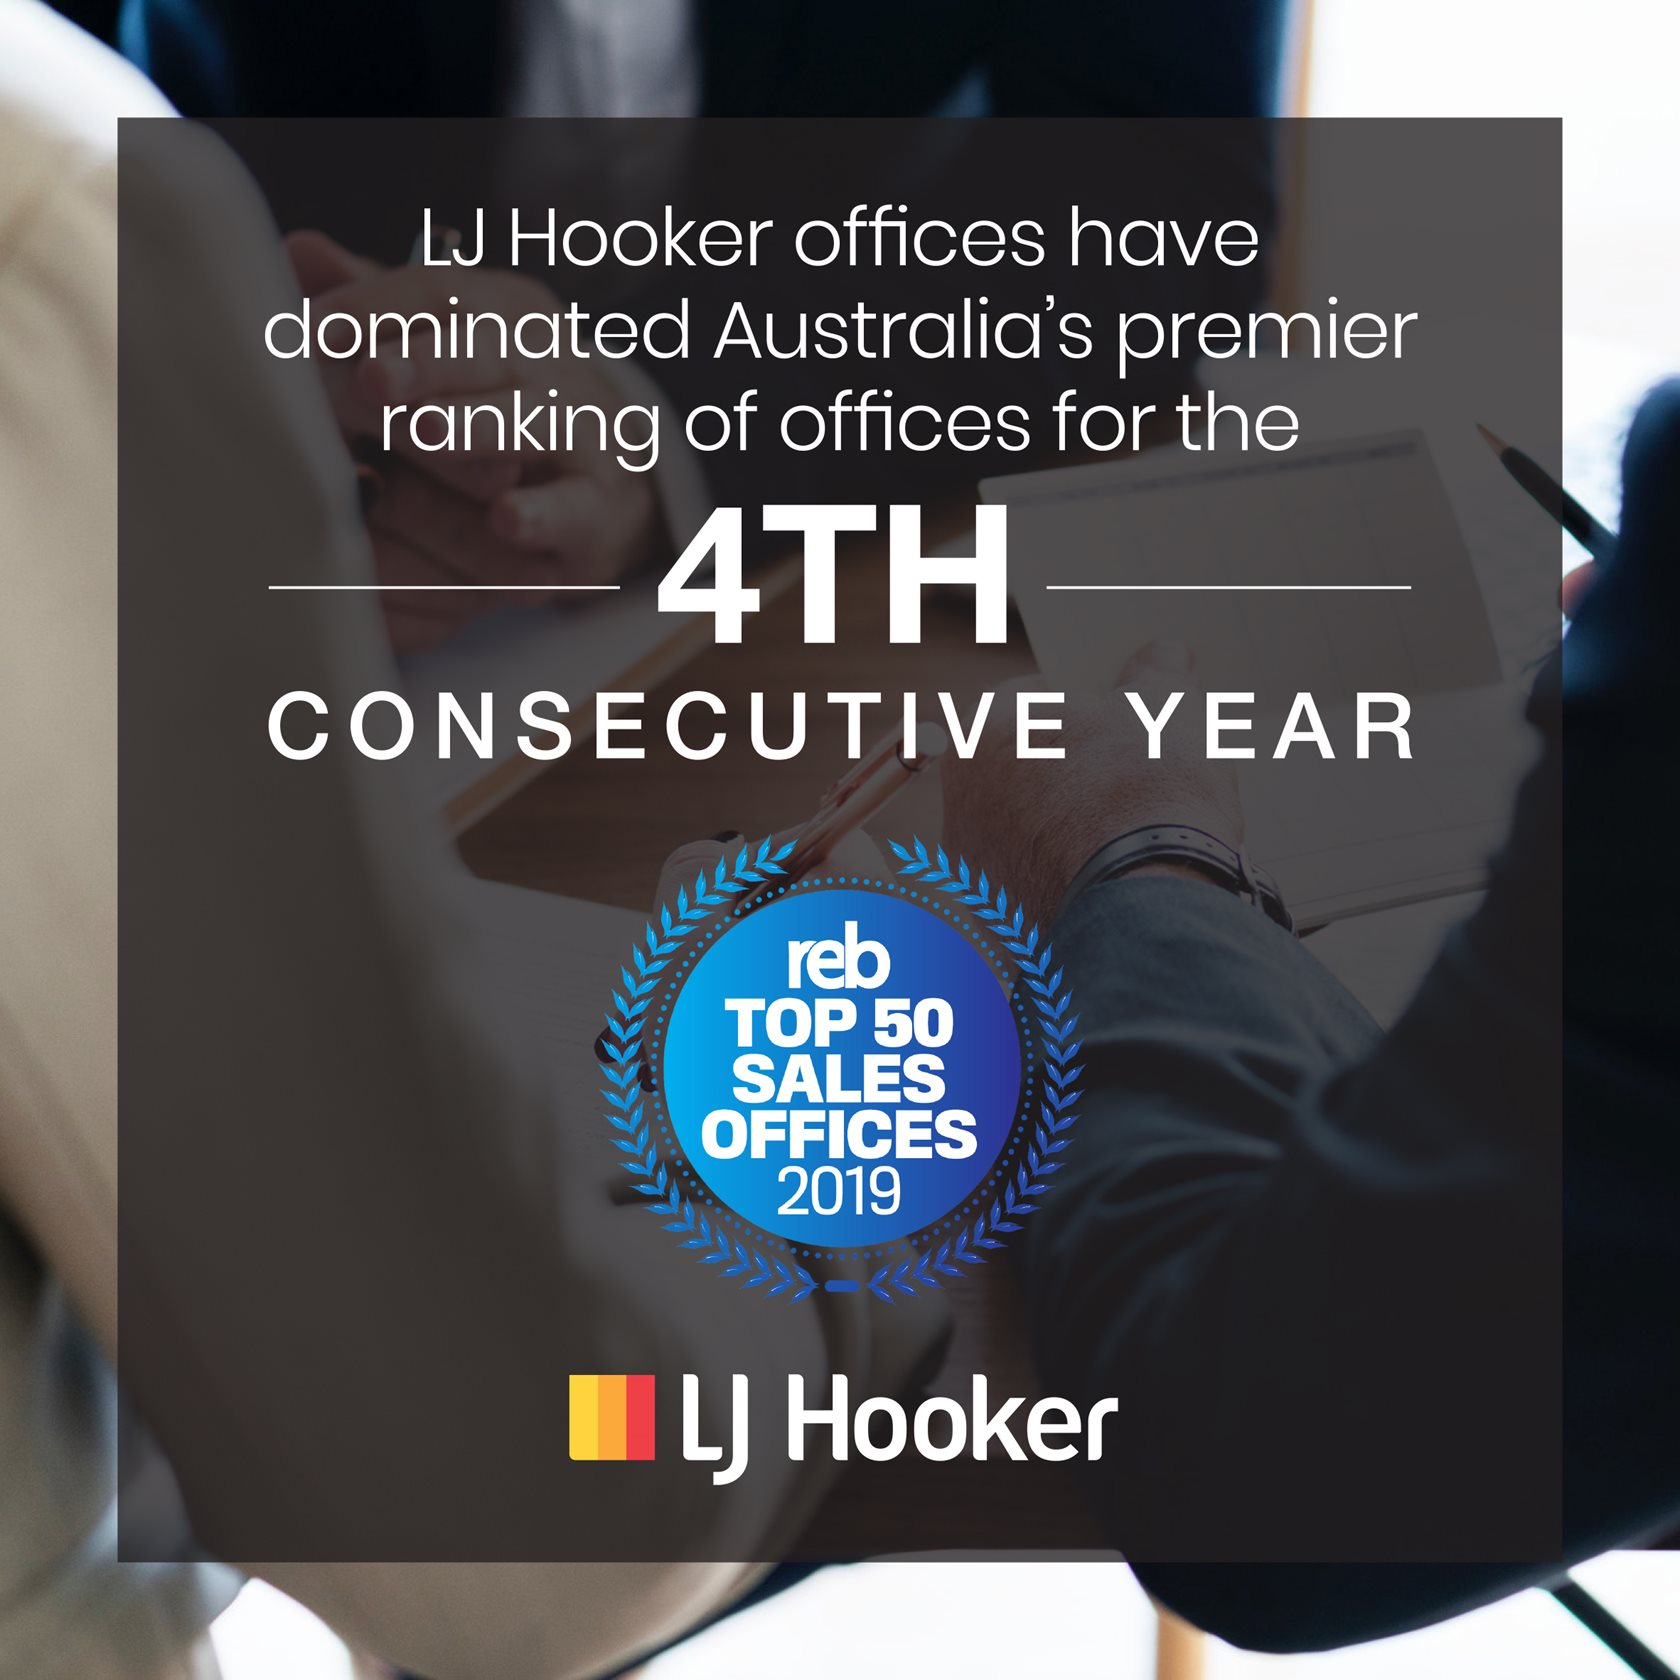 LJ Hooker dominates the REB Top 50 Sales Offices ranking for the 4th consecutive year